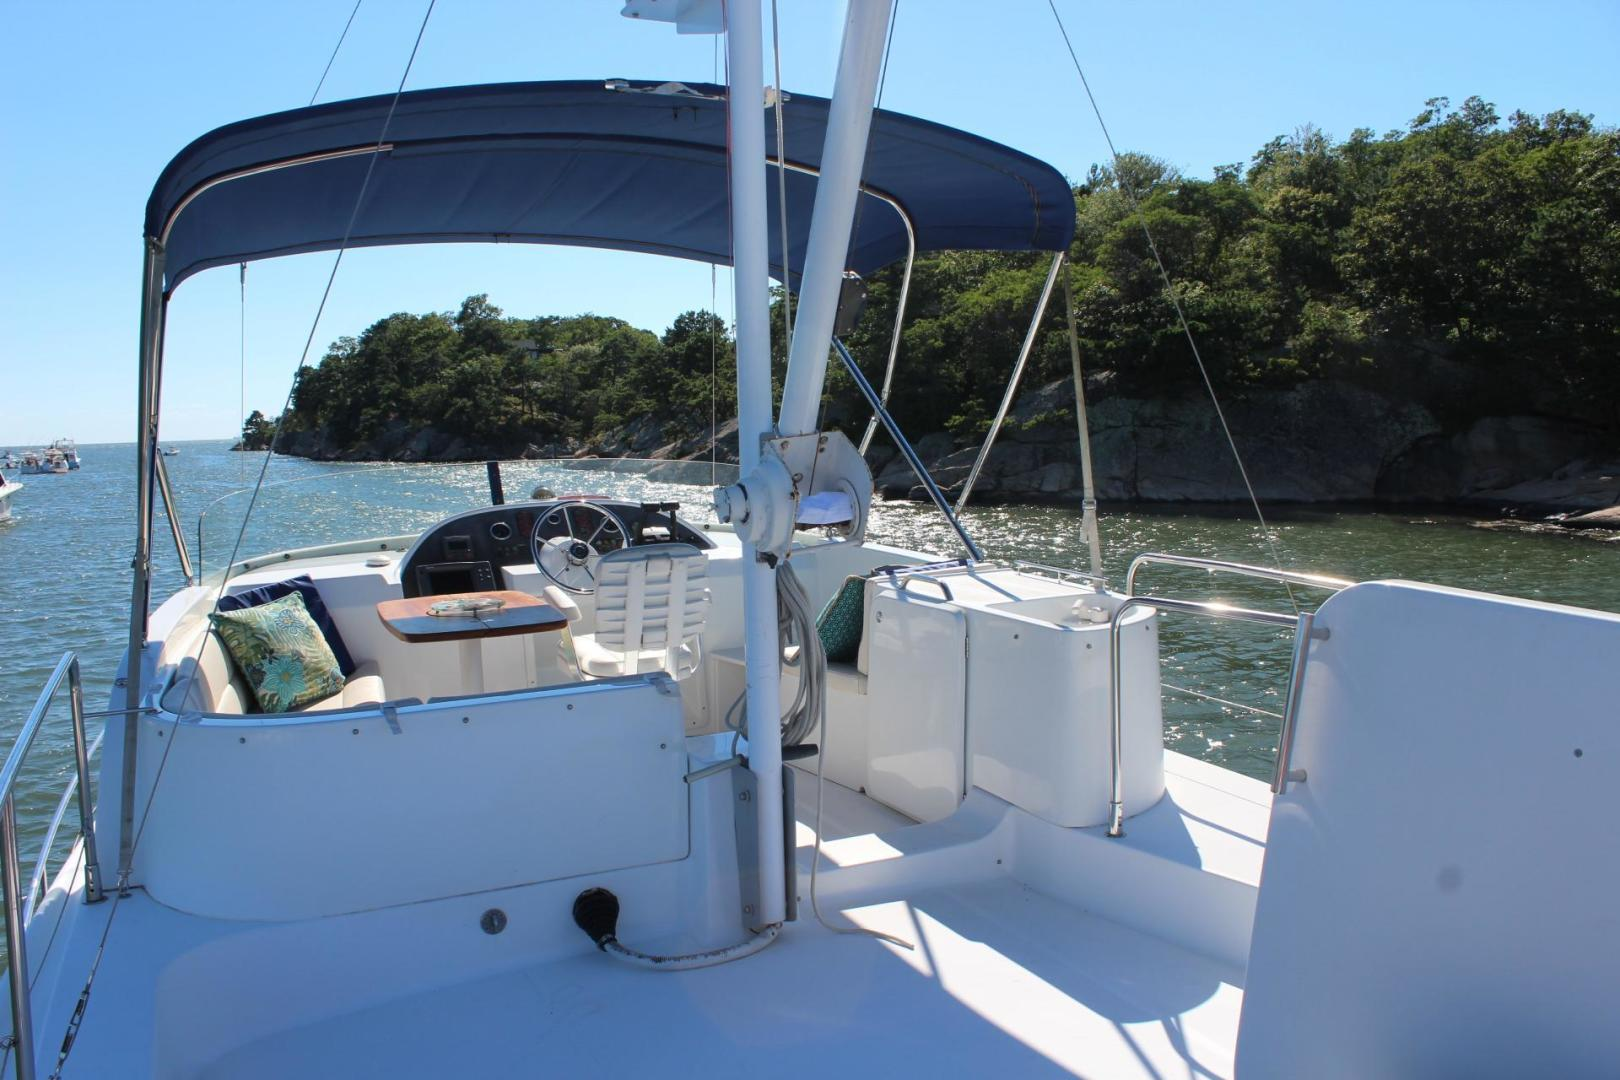 Beneteau-Swift Trawler 42 2006 -Essex-Connecticut-United States-1547736 | Thumbnail